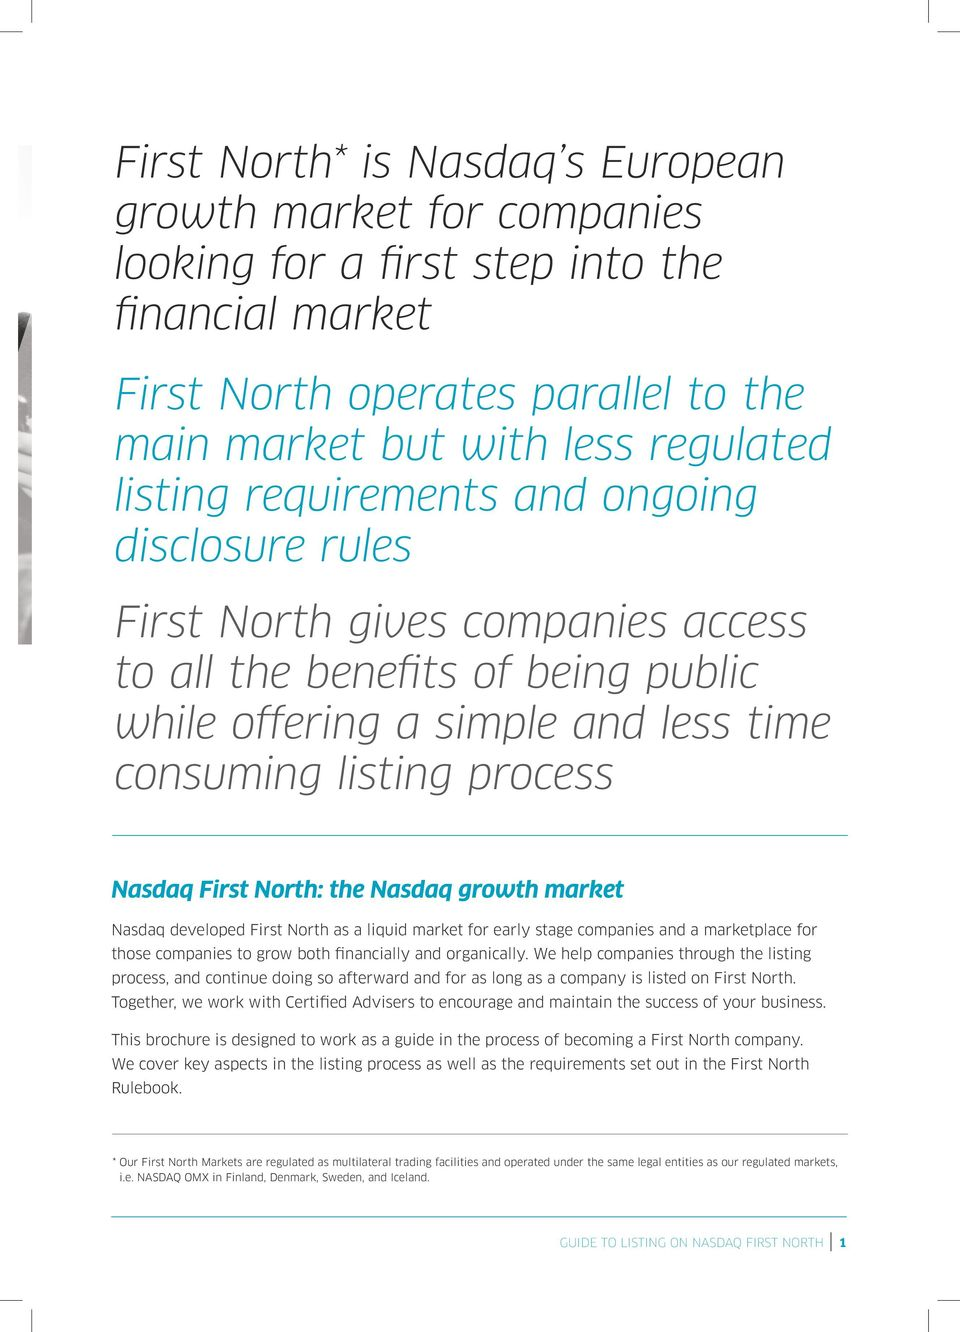 the Nasdaq growth market Nasdaq developed First North as a liquid market for early stage companies and a marketplace for those companies to grow both financially and organically.